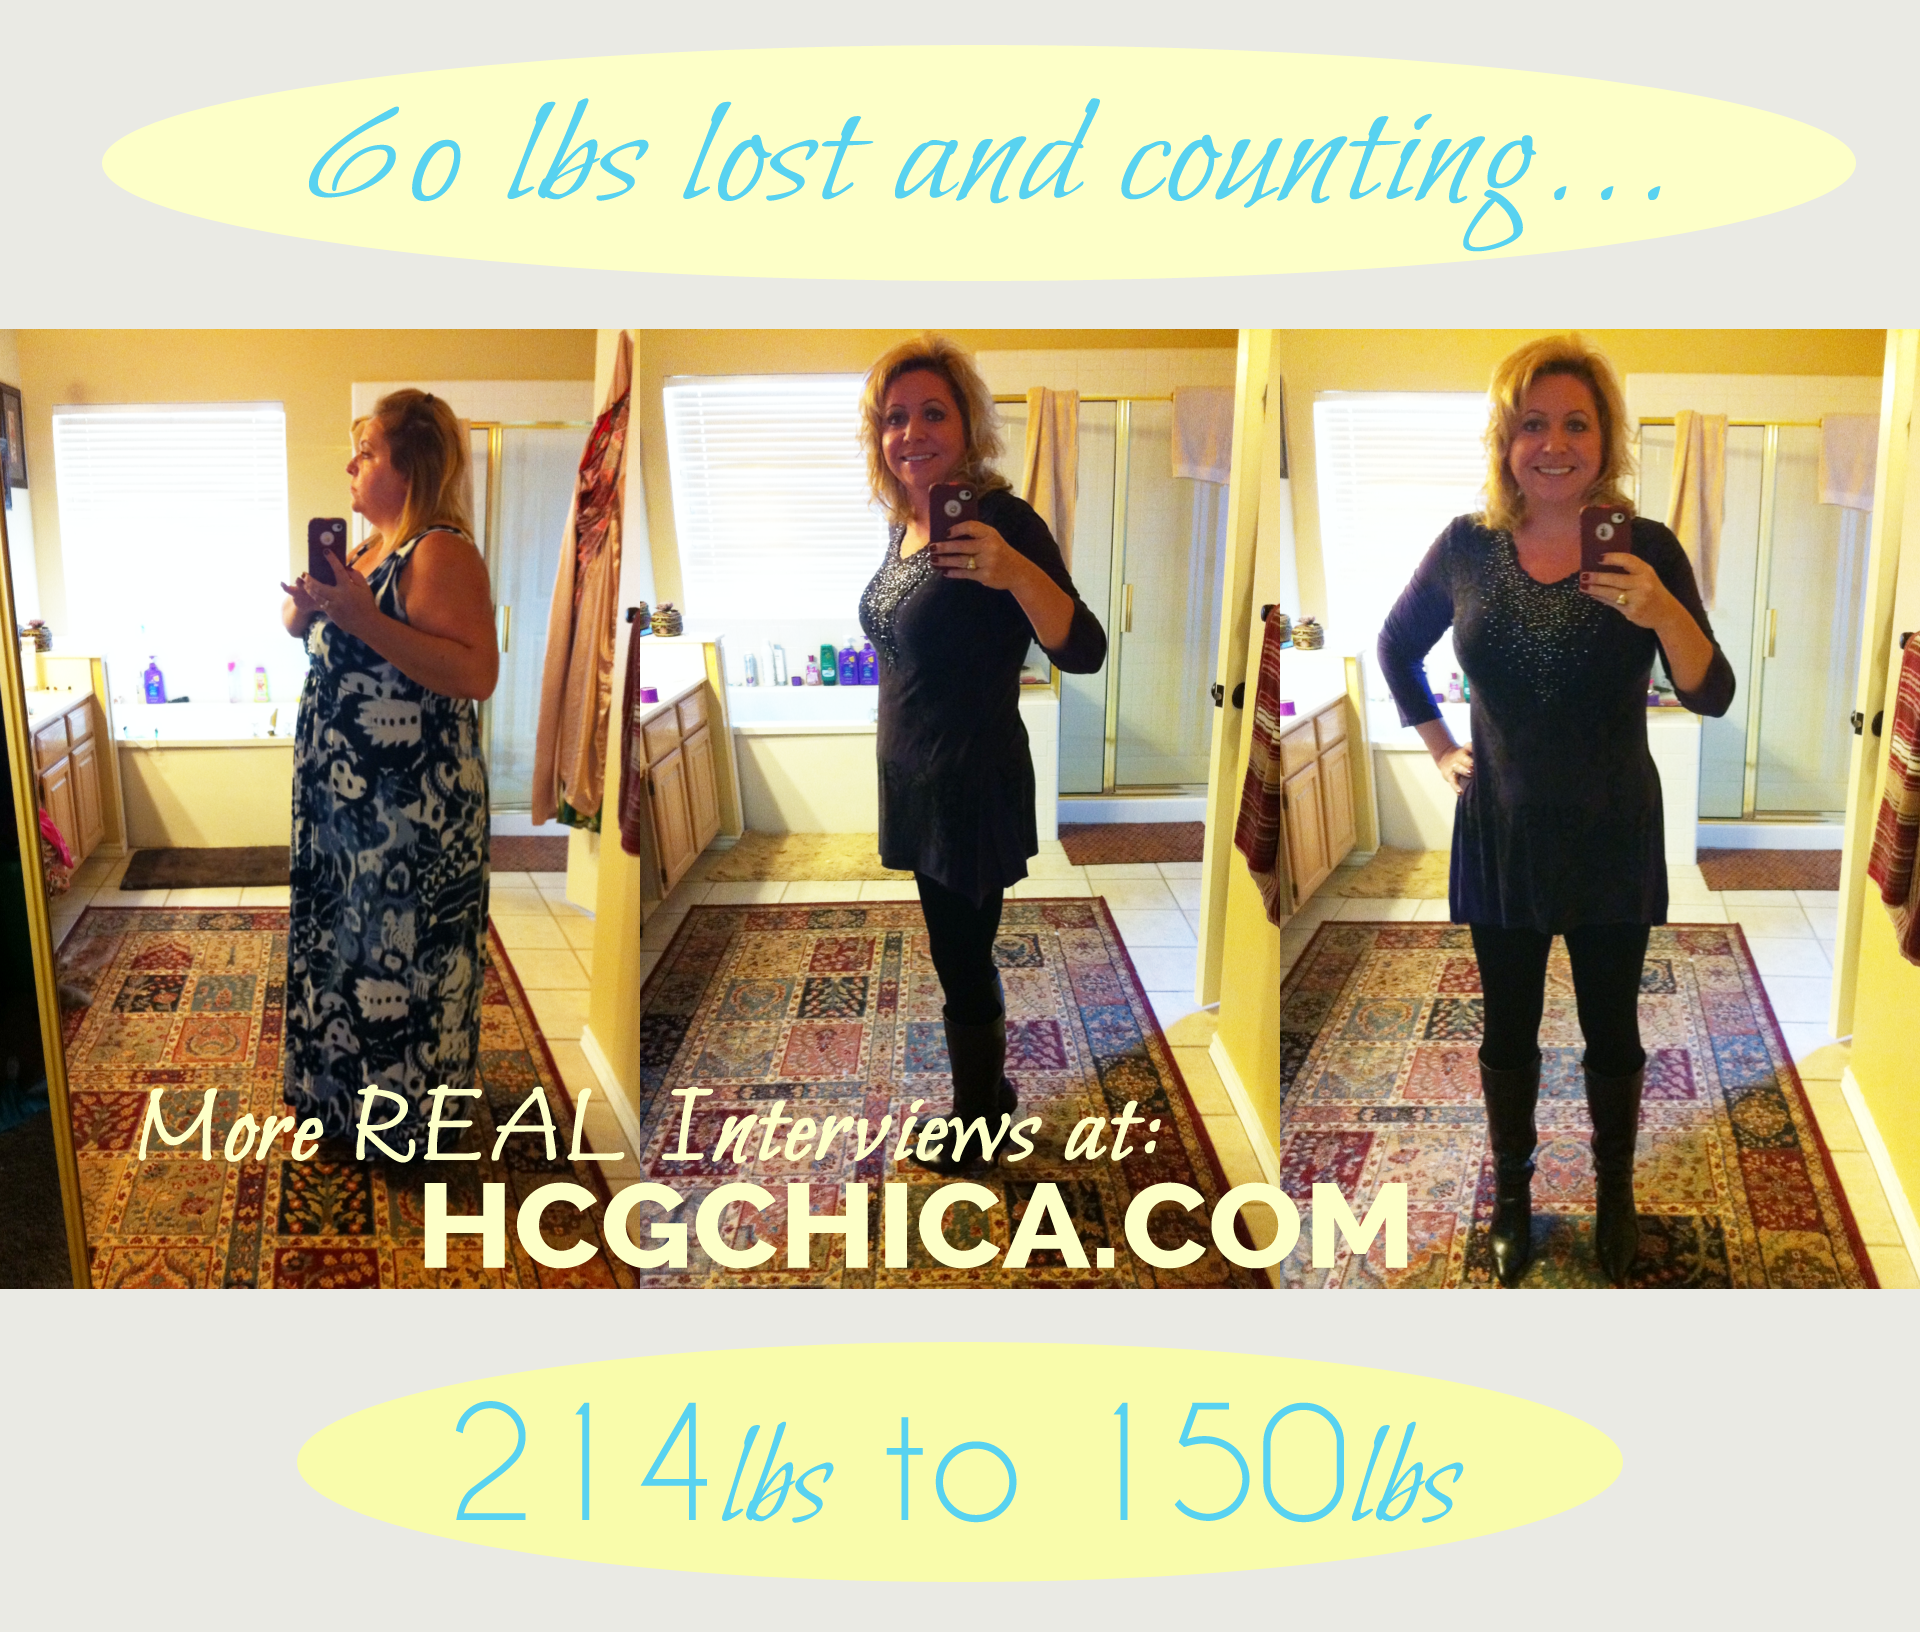 hCG Diet Results - 65lb Weight Loss in 5 Months - Episode 4